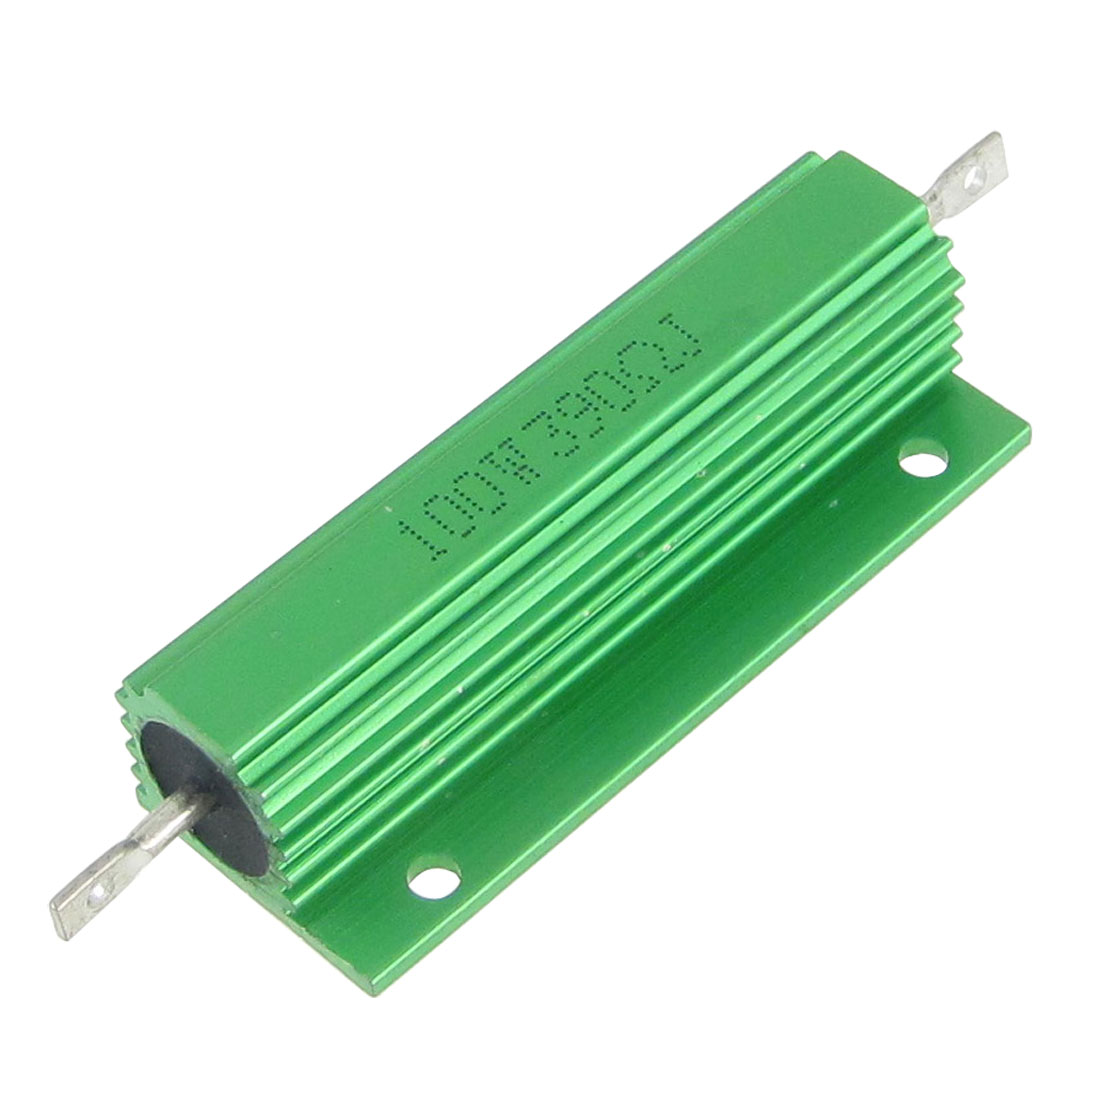 Green Aluminum Shell Wire Wound 100W 5% 390 Ohm Resistors Resistance 2 Pcs